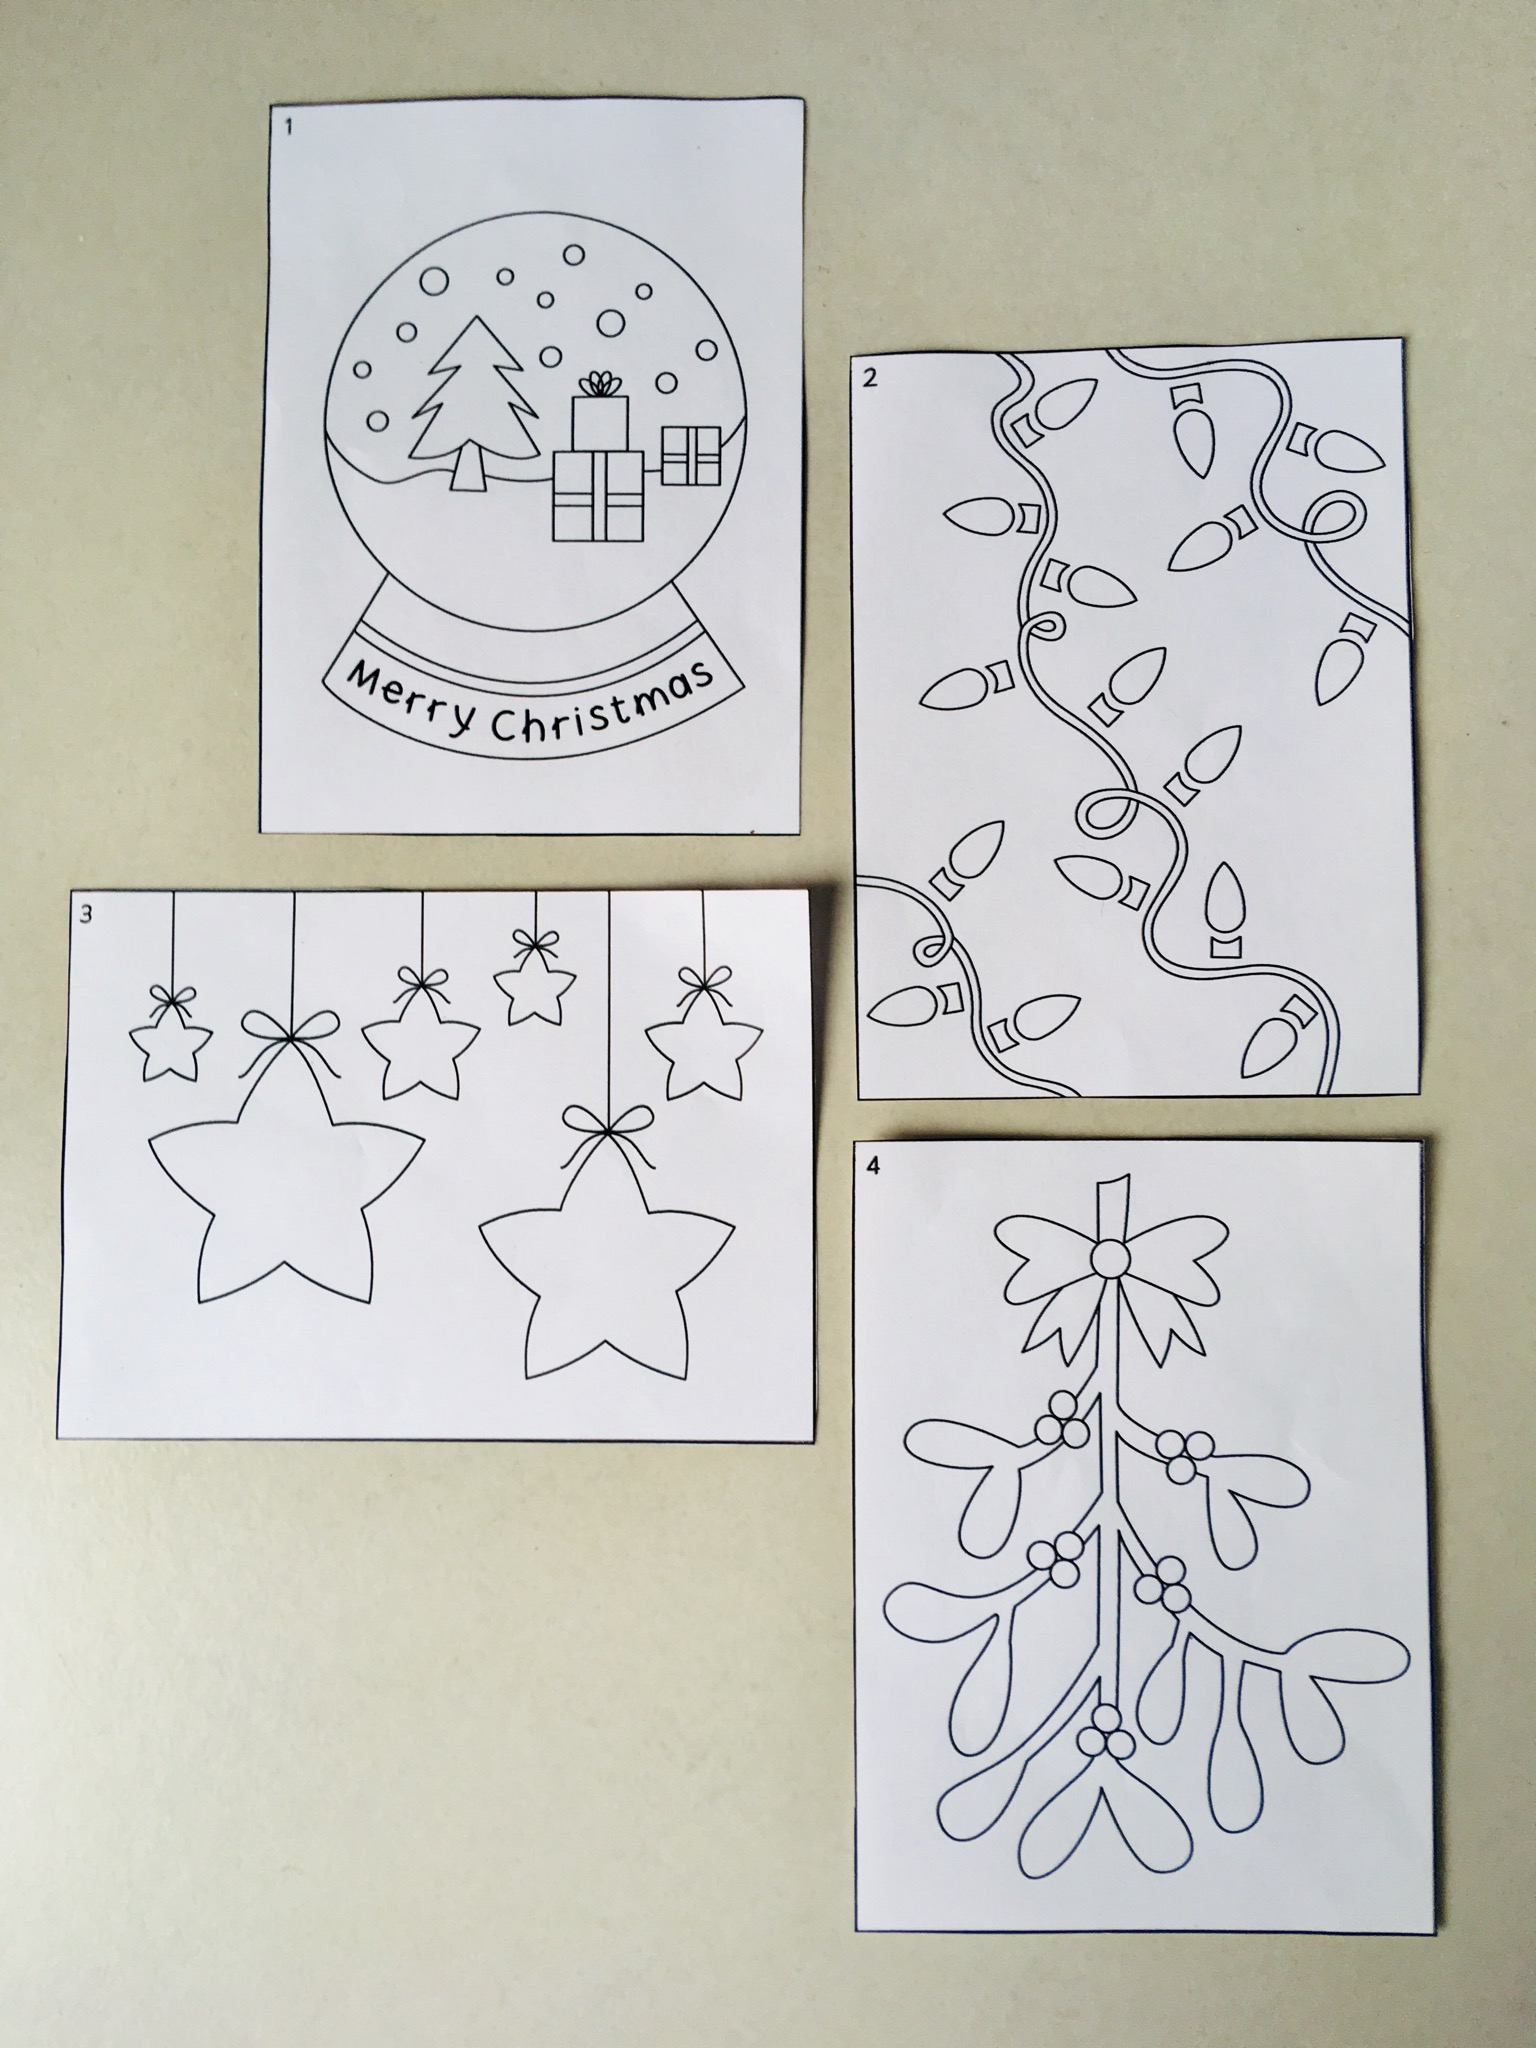 4 smaller christmas pictures cut out